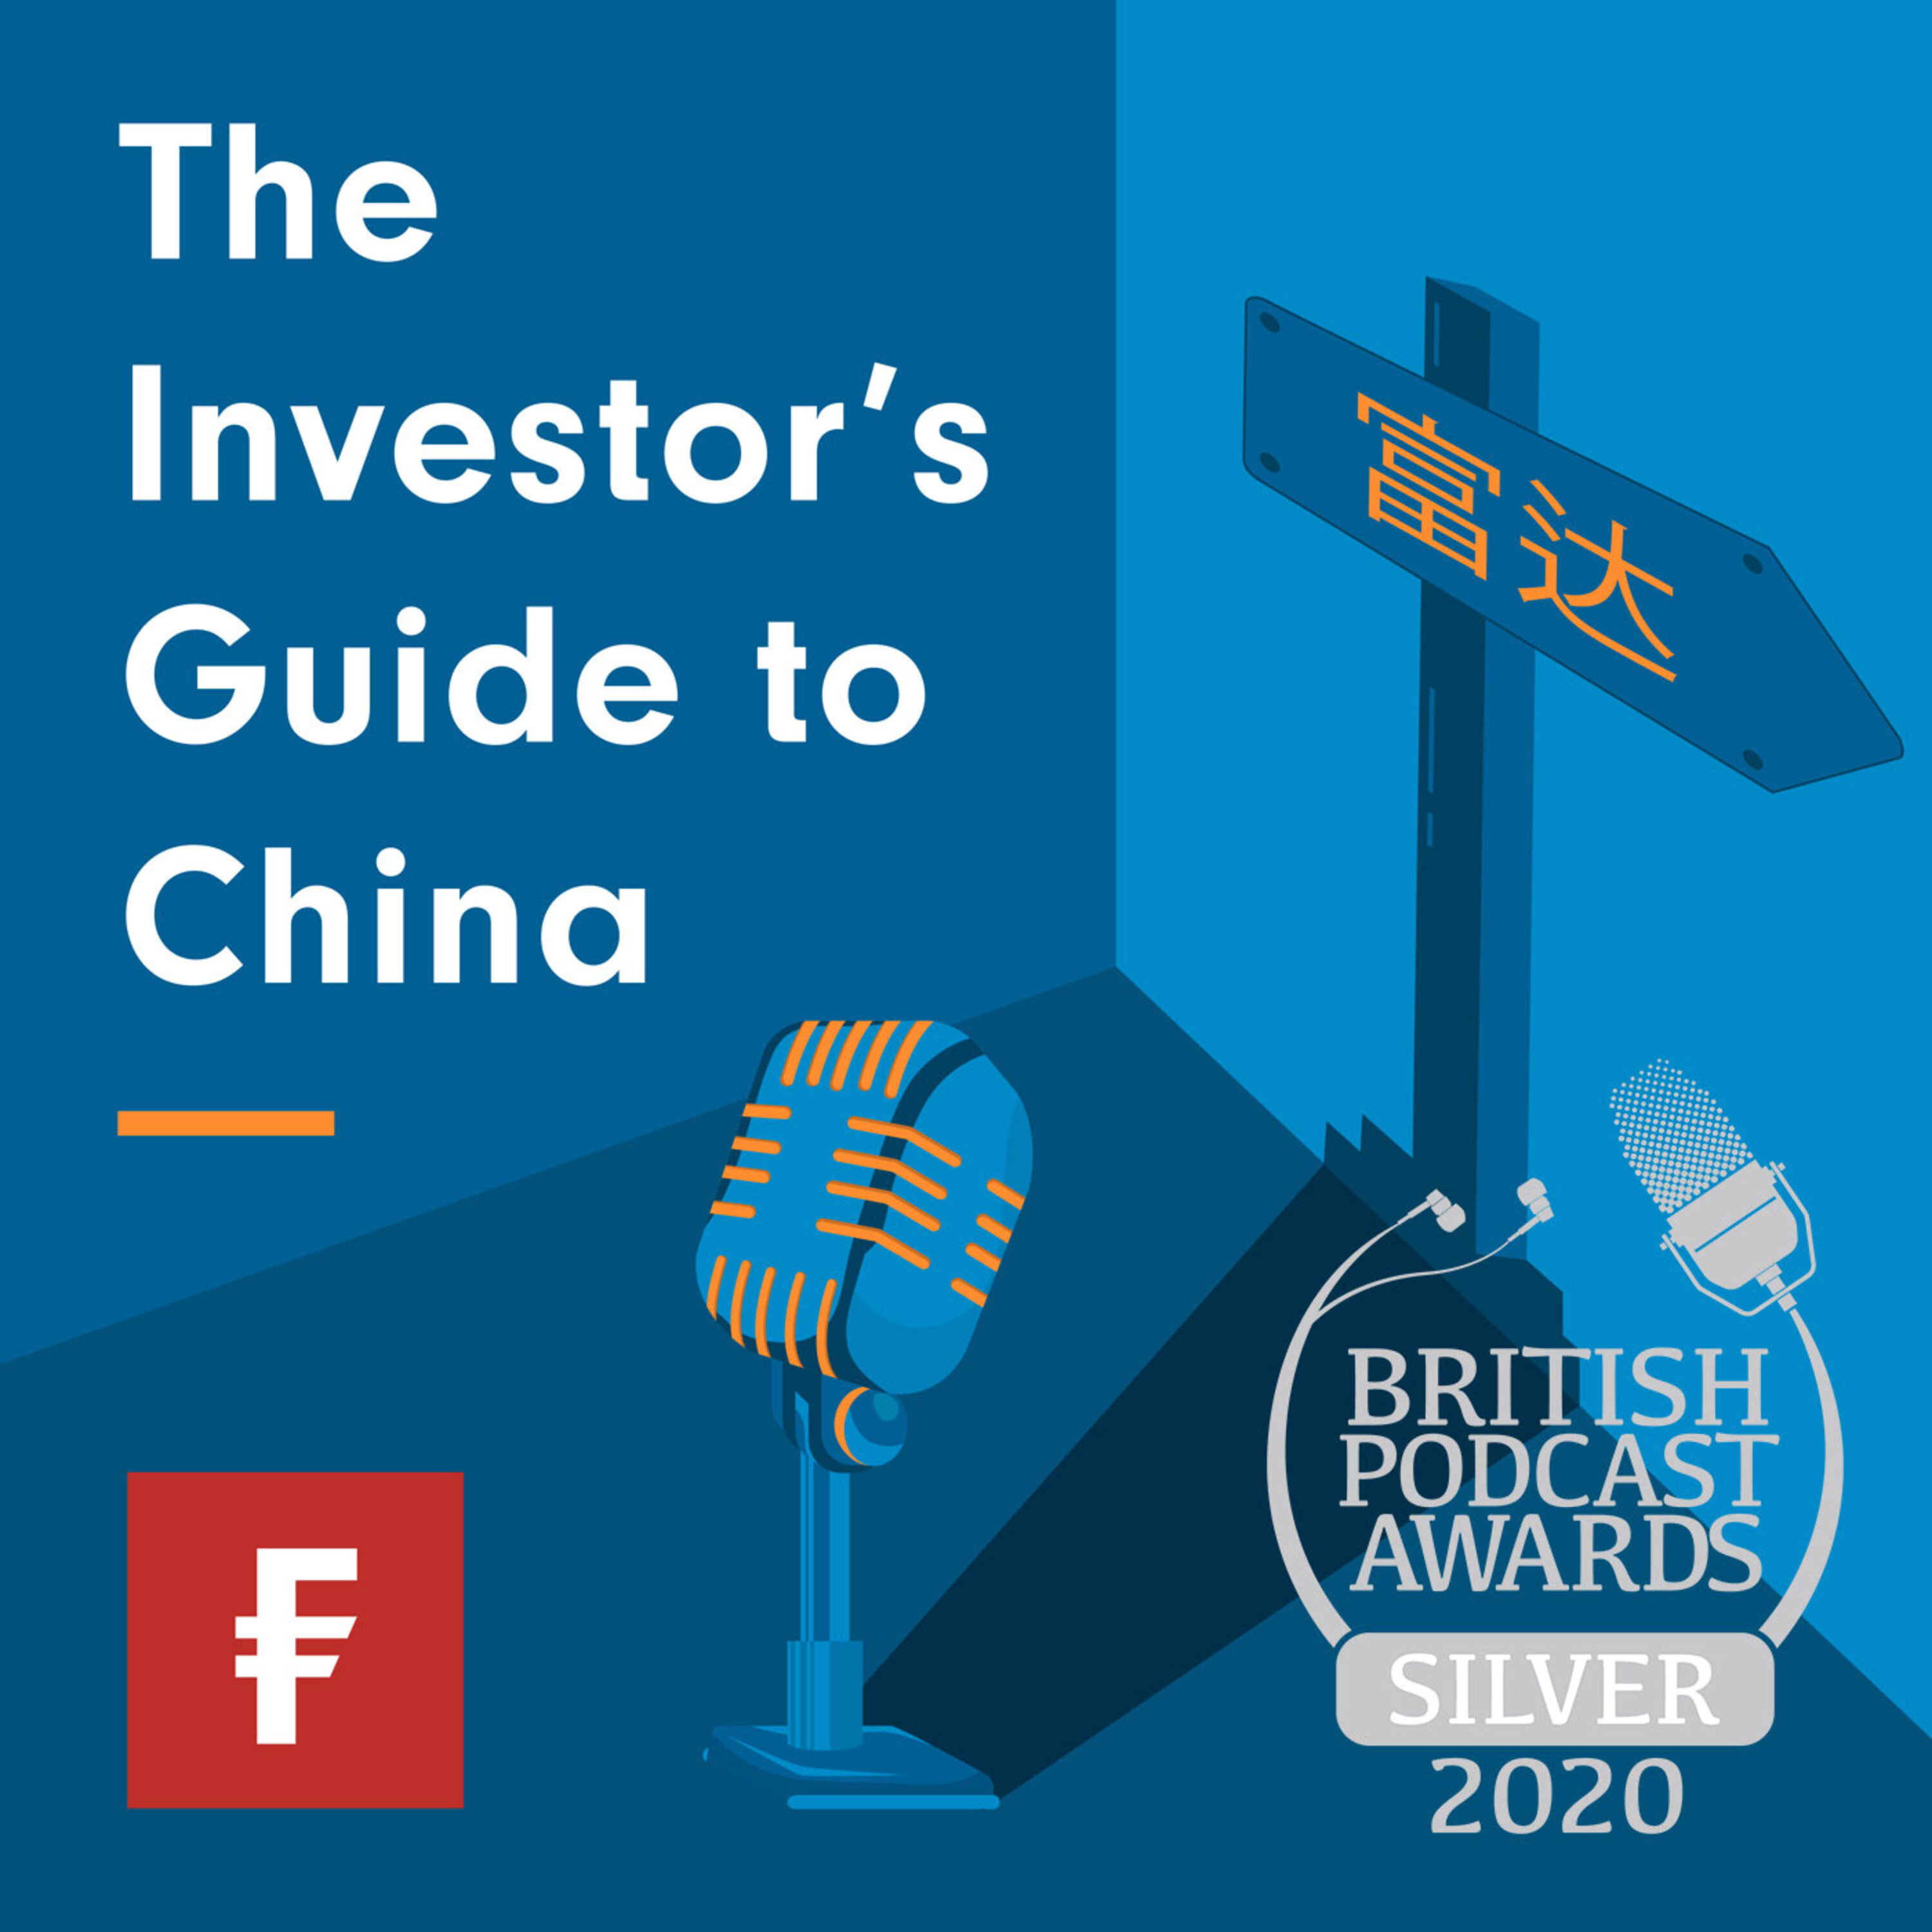 The Investor's Guide to China: China in the world - an interview with Gavekal's Louis-Vincent Gave (#9)